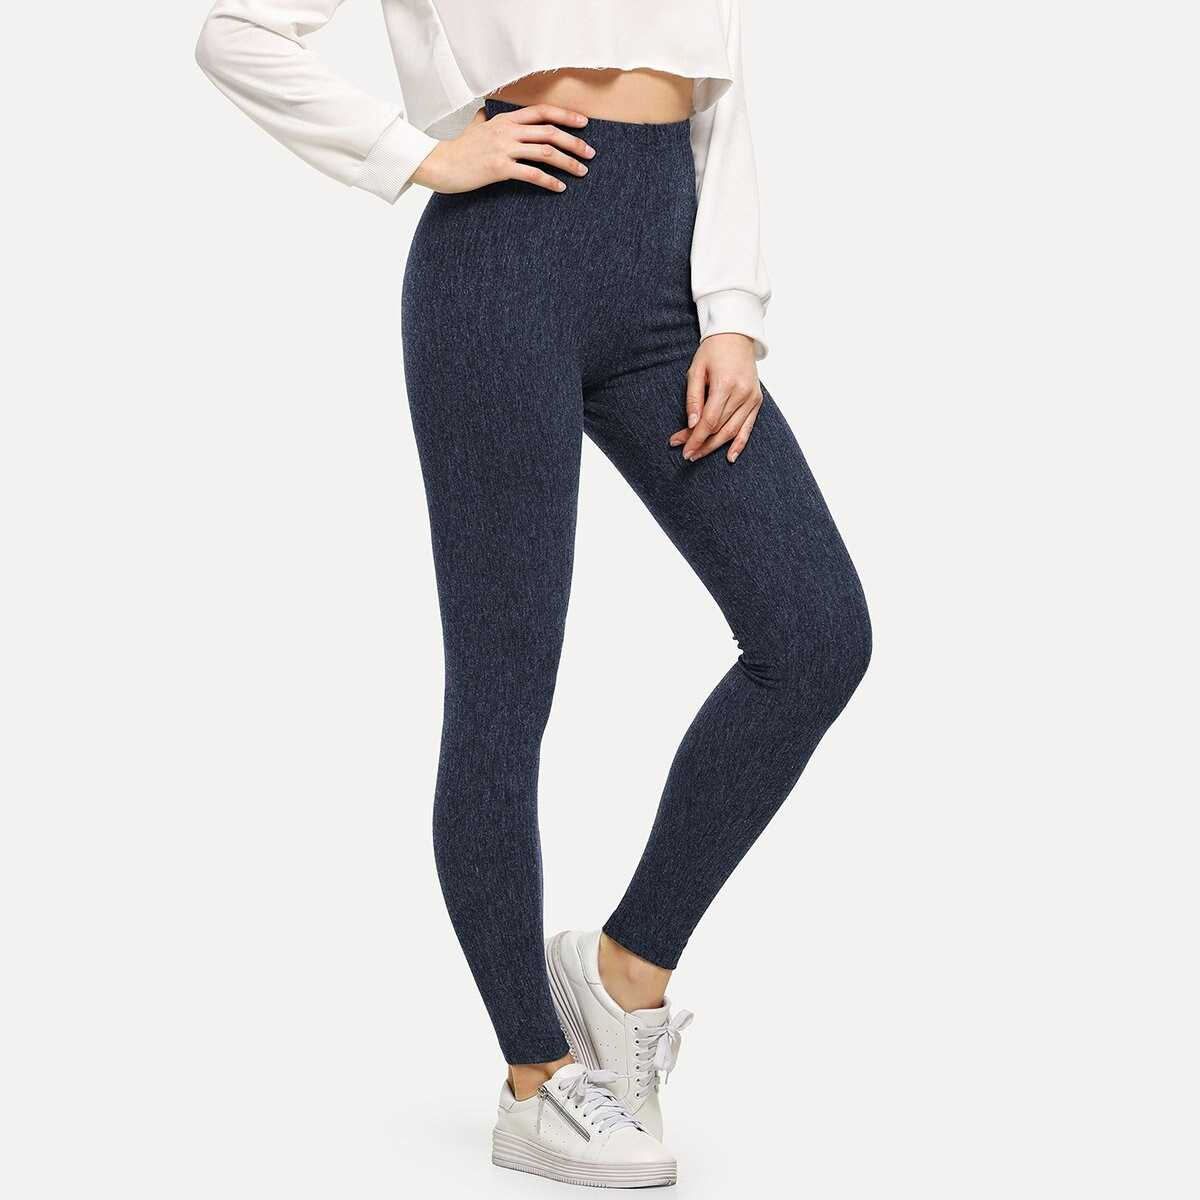 High Waist Heathered Knit Leggings - Shein - GOOFASH